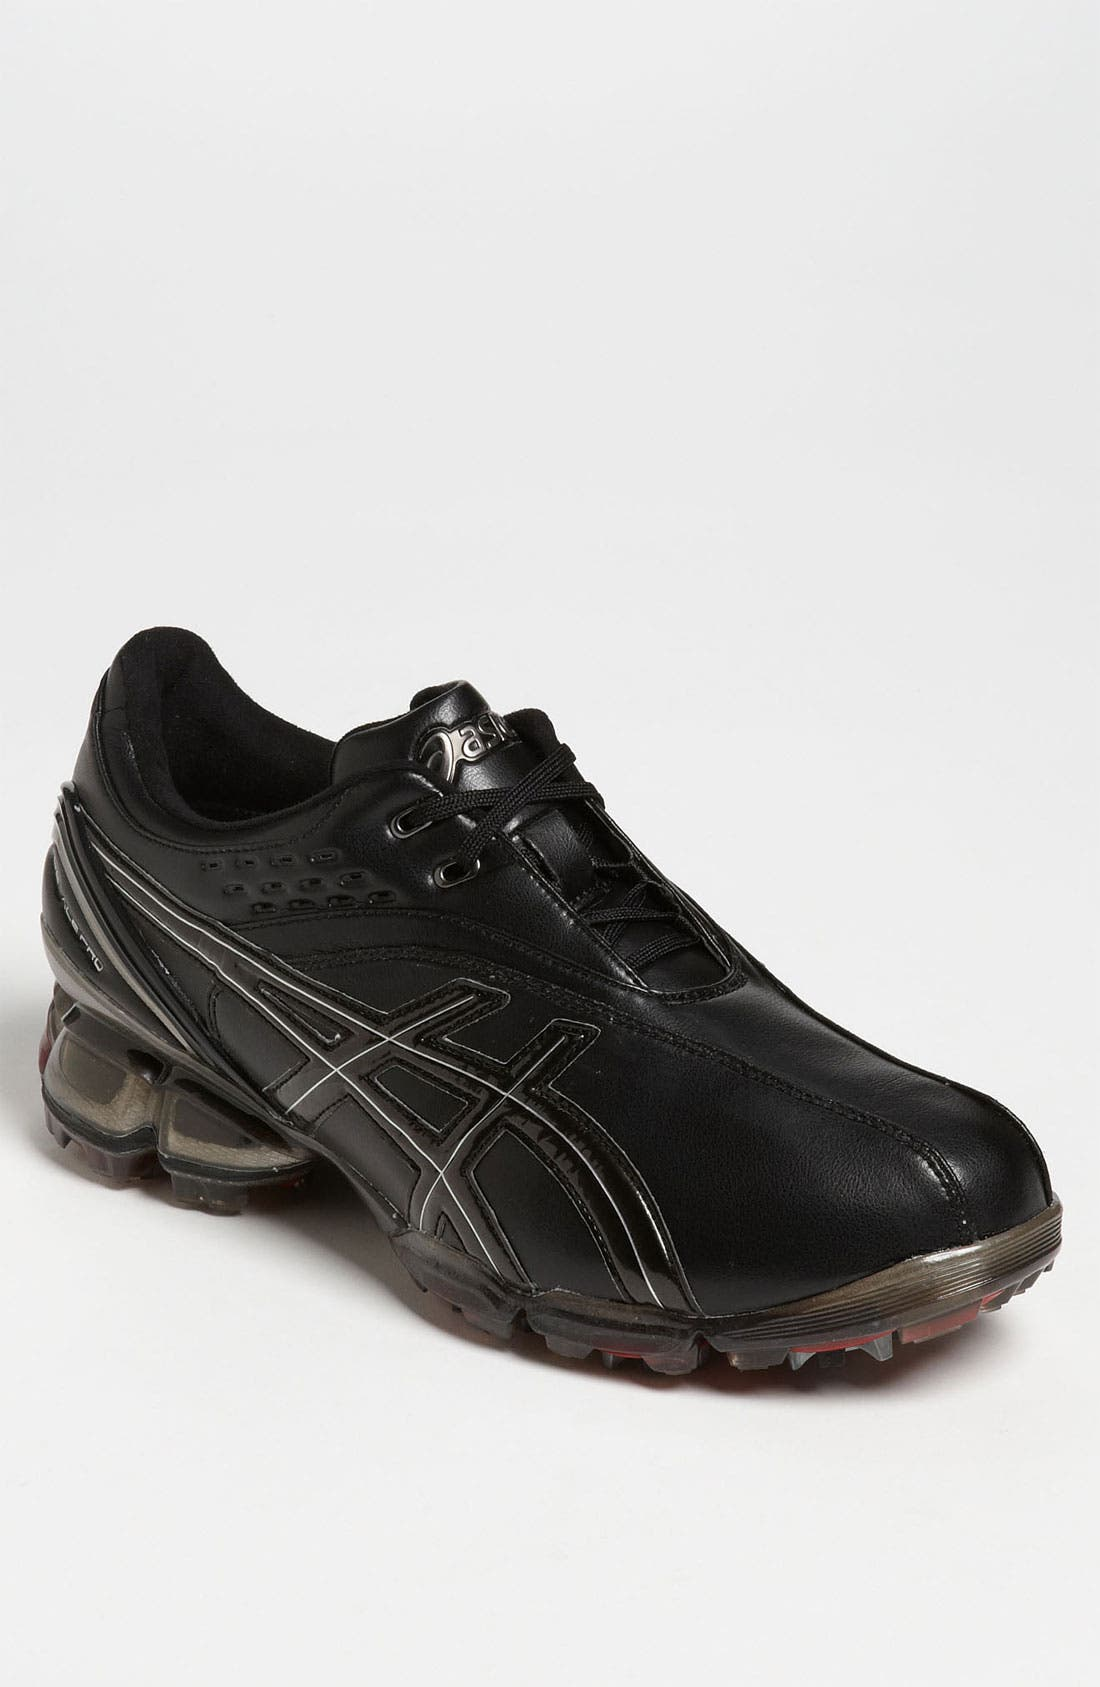 Alternate Image 1 Selected - ASICS® 'GEL-Ace Pro' Golf Shoe (Men)